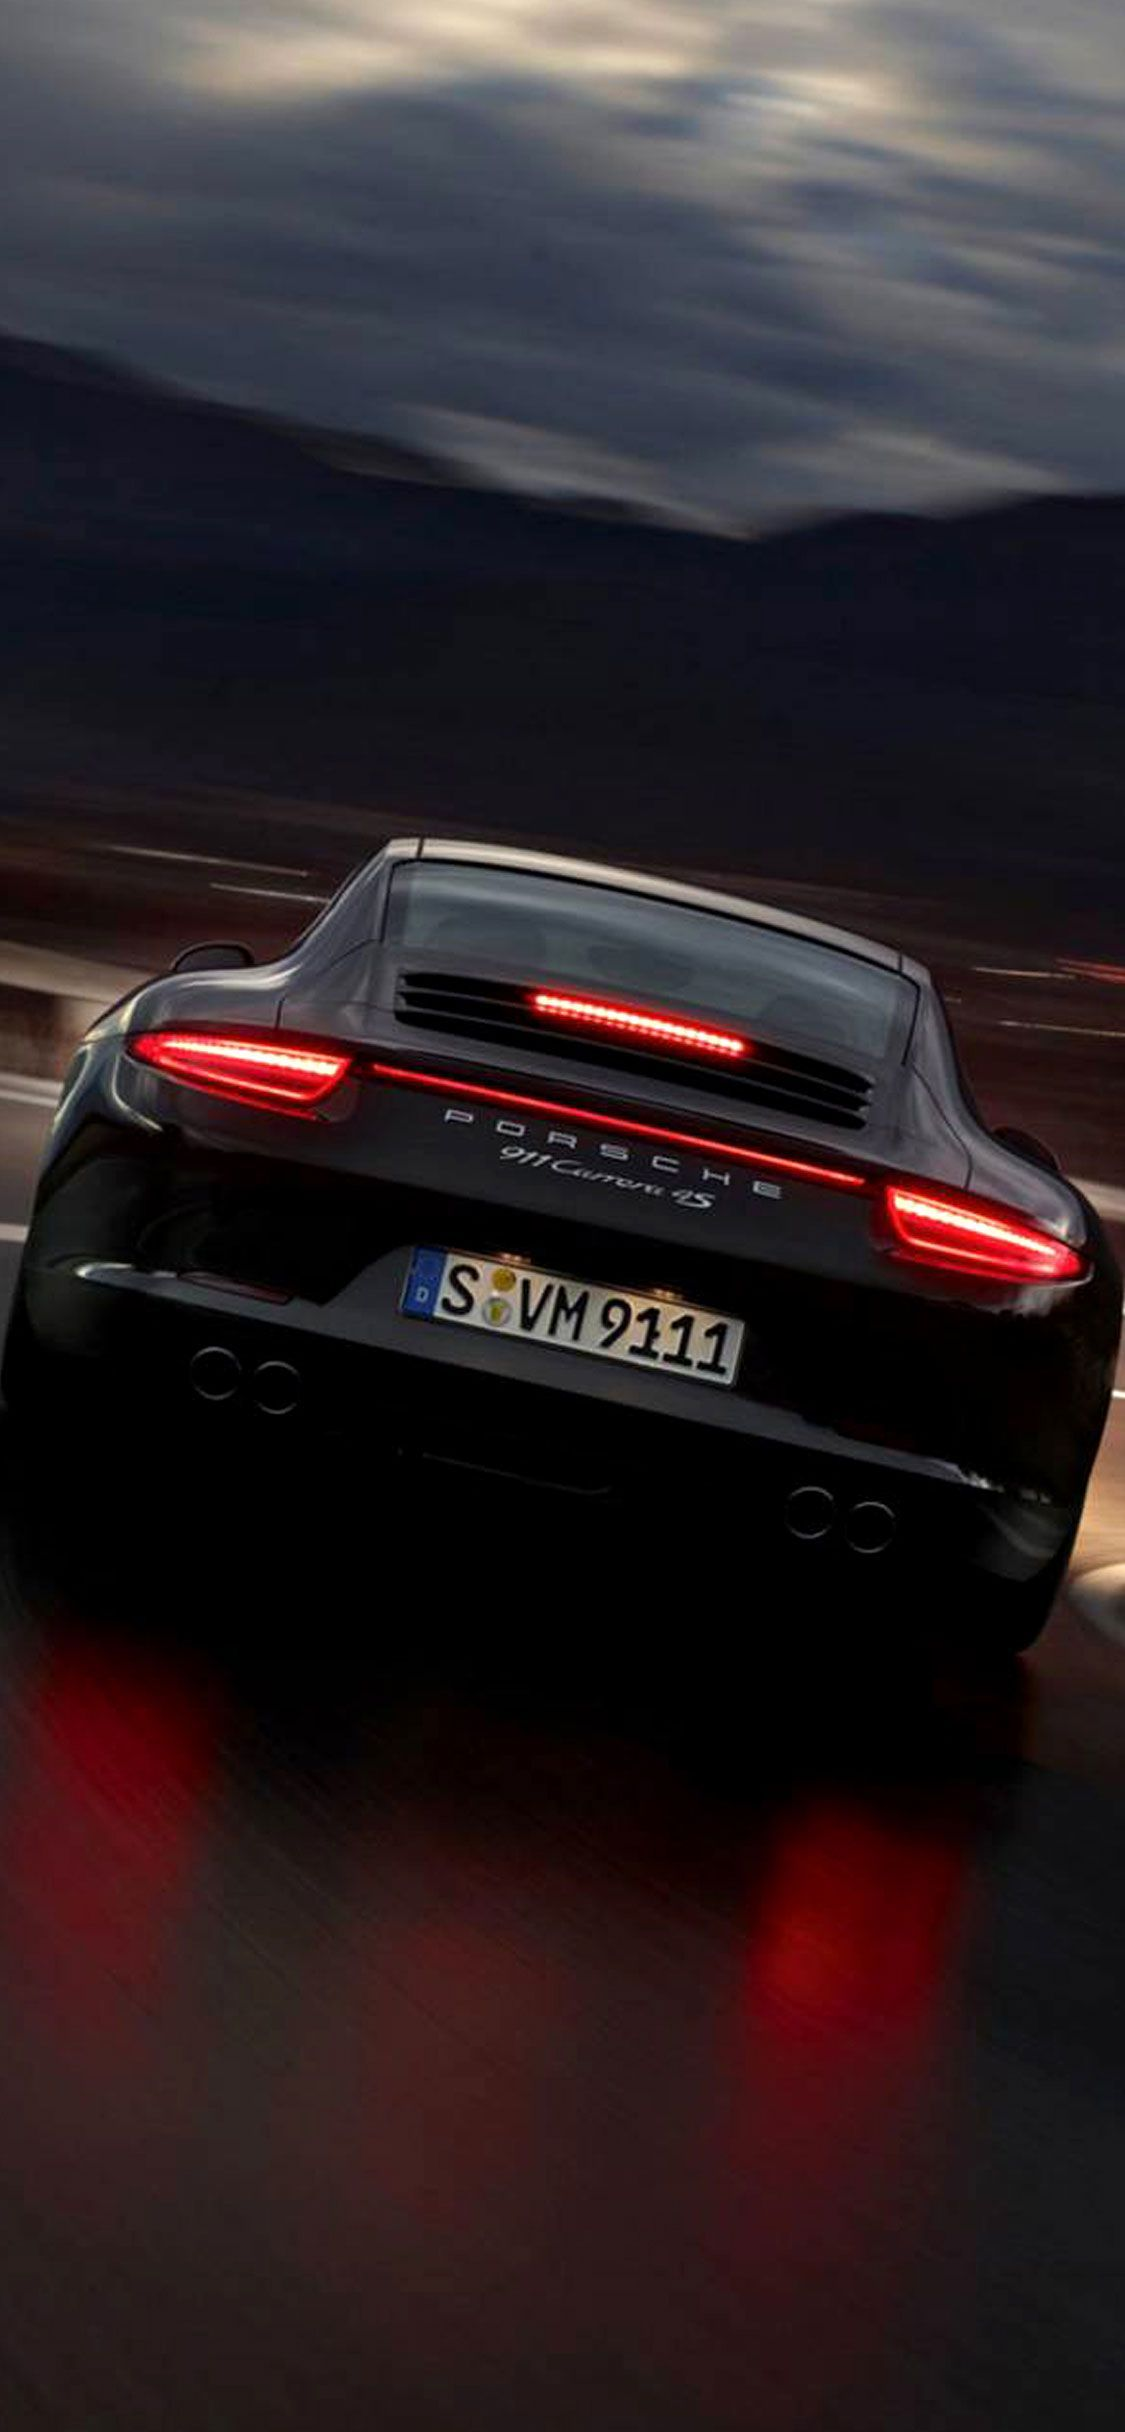 Best Porsche Wallpapers For Iphone X Ioswall Iphonewallpaper Iphone Wallpaper Android Andro Porsche Iphone Wallpaper Car Iphone Wallpaper Car Wallpapers